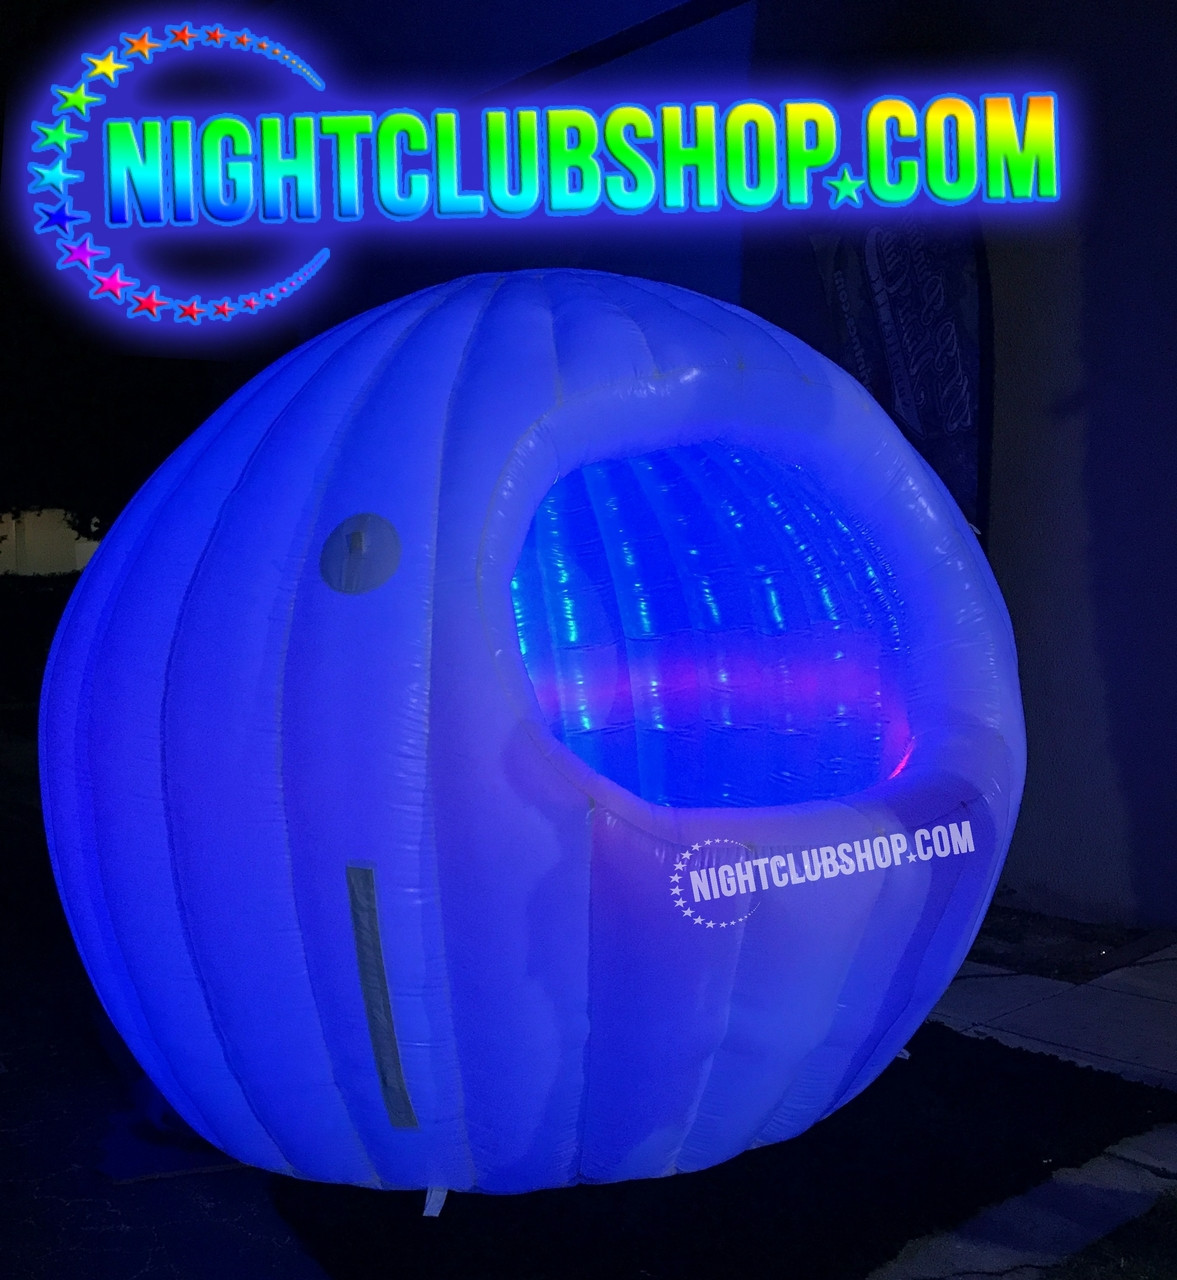 Inflatable_Pop Up_LED_DJ_Booth_DJBooth_Sphere,Light up_illuminated_cabin_Glow_Neon_UV_DJS, Gear, Stage_mini_portable, Air, Blow up,Tent,display,facade, LEDDJBooth,Nightclubshop